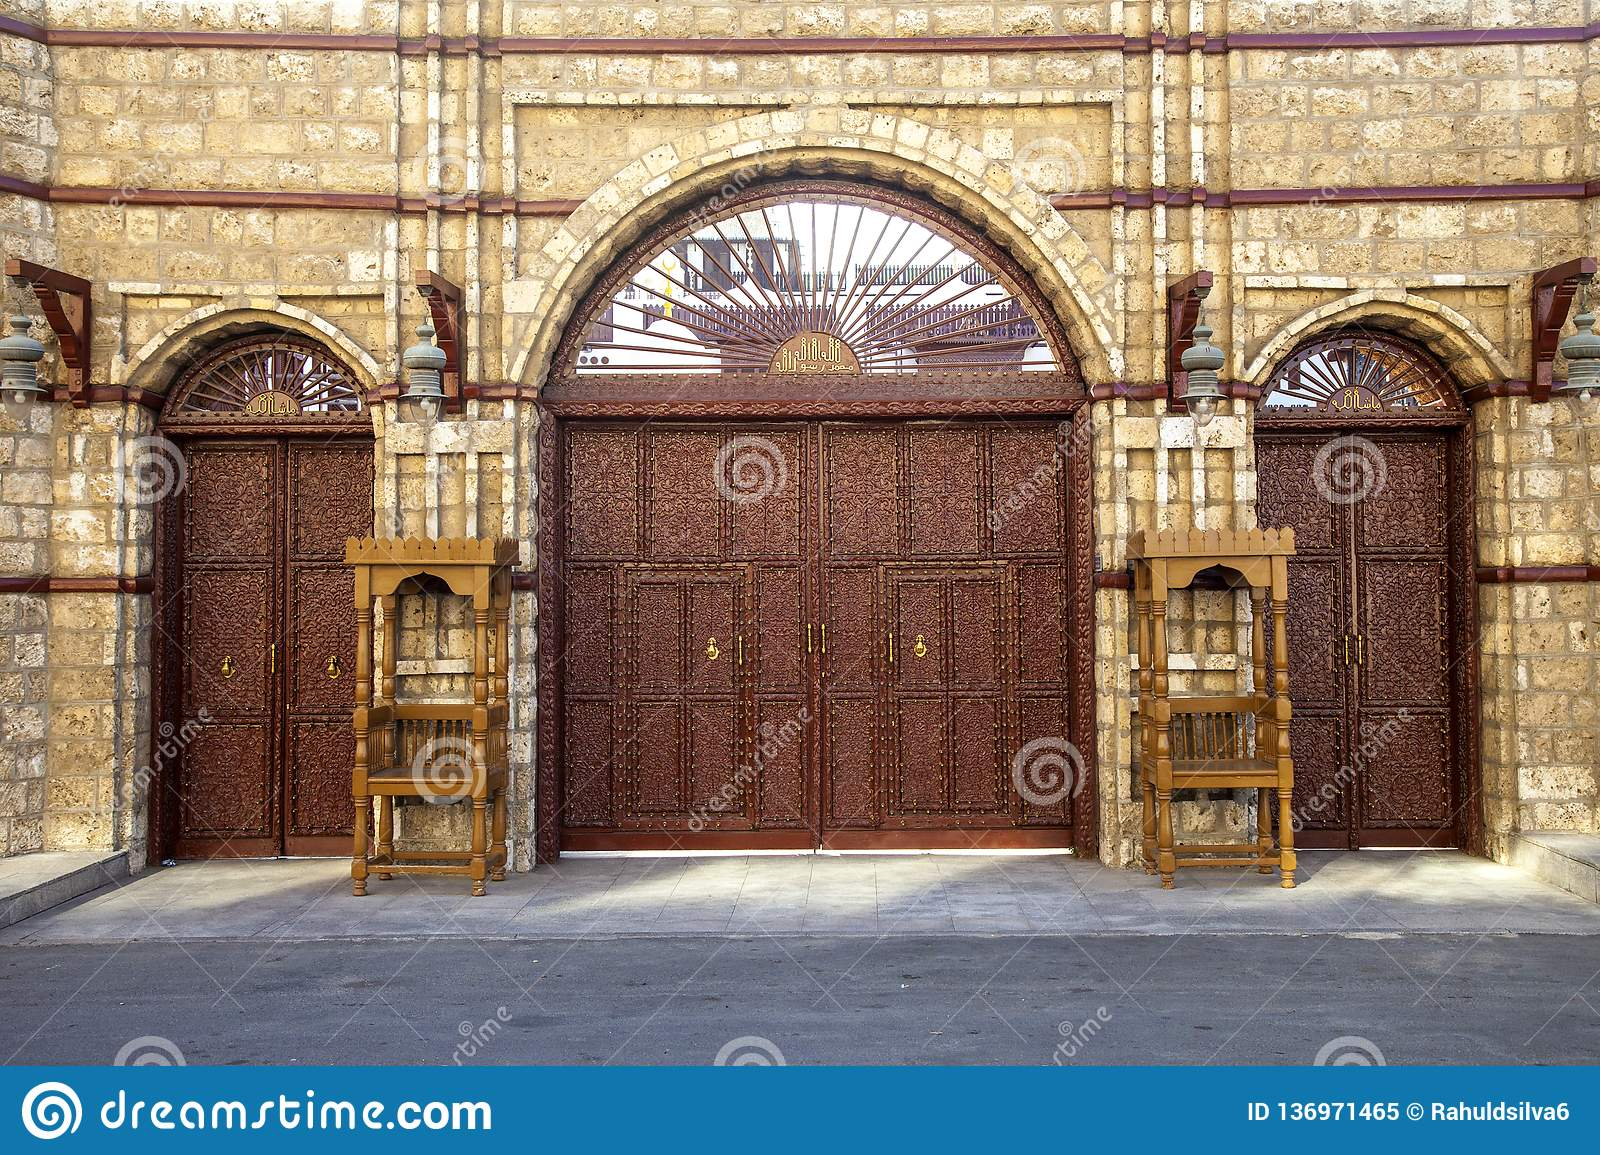 Old city in Jeddah, Saudi Arabia known as Historical Jeddah. Old and heritage Windows and Doors in Jeddah.Saudi Arabia